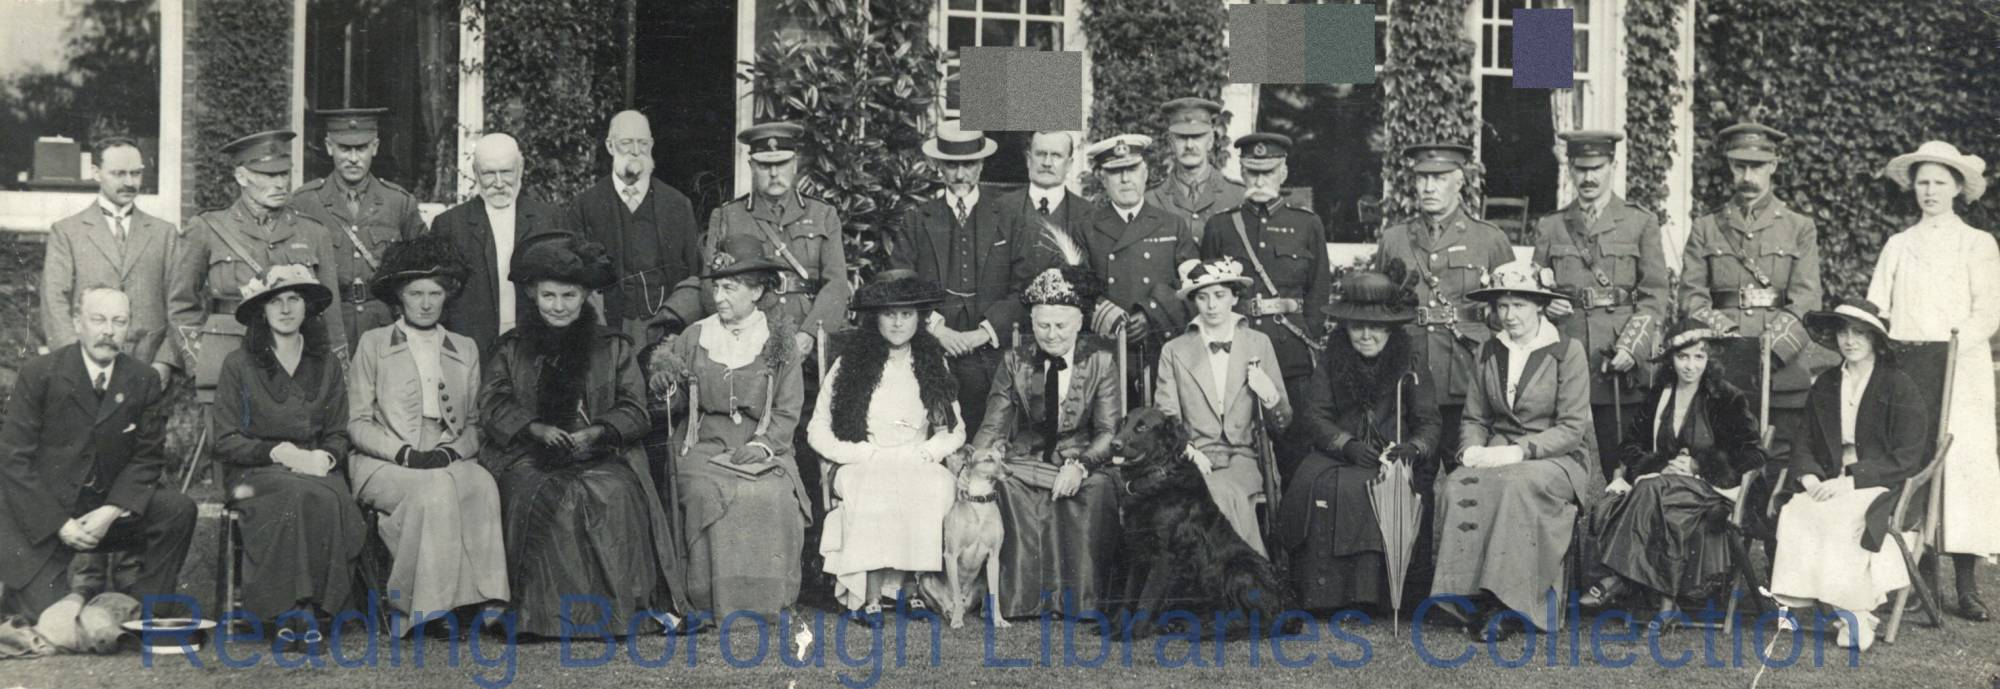 A Party of People Outside a Large House In or Near Reading, 1915, who had witnessed or taken part in a Recruiting Drive. Including Admiral Fleet, Leonard Goodhart Sutton, Sir Percy Sanderson, and Alderman Charles Gyningham Field.